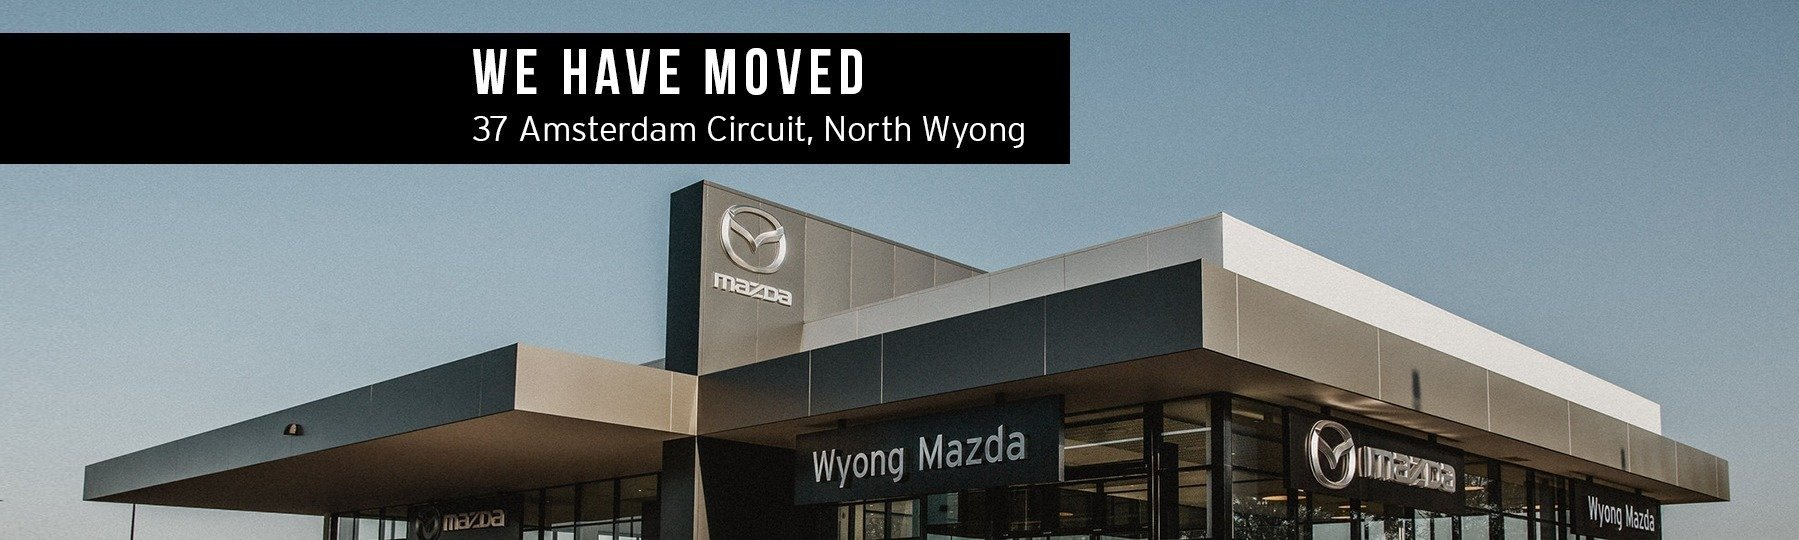 WE HAVE MOVED - 37 Amsterdam Circuit, North Wyong